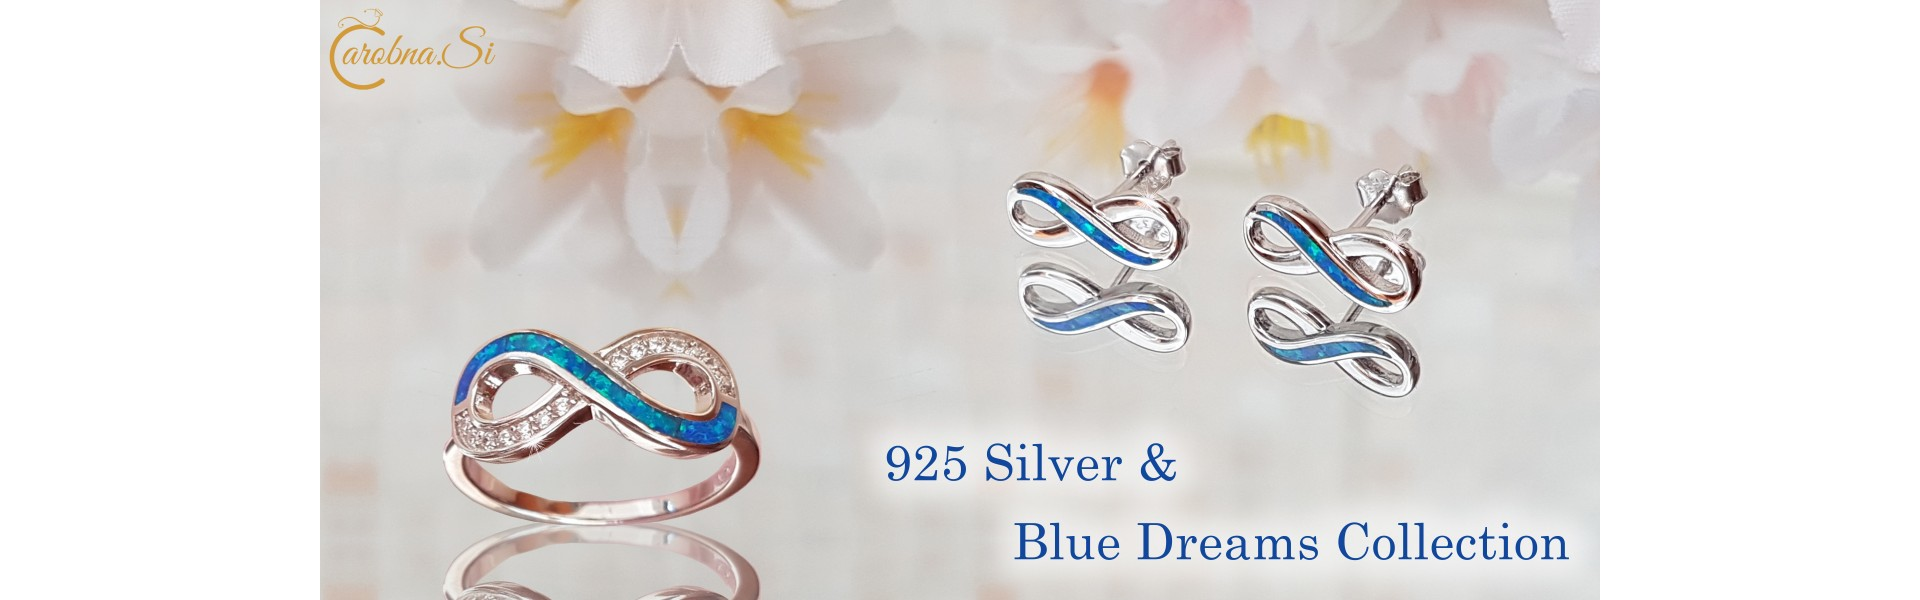 bluedreamcollection